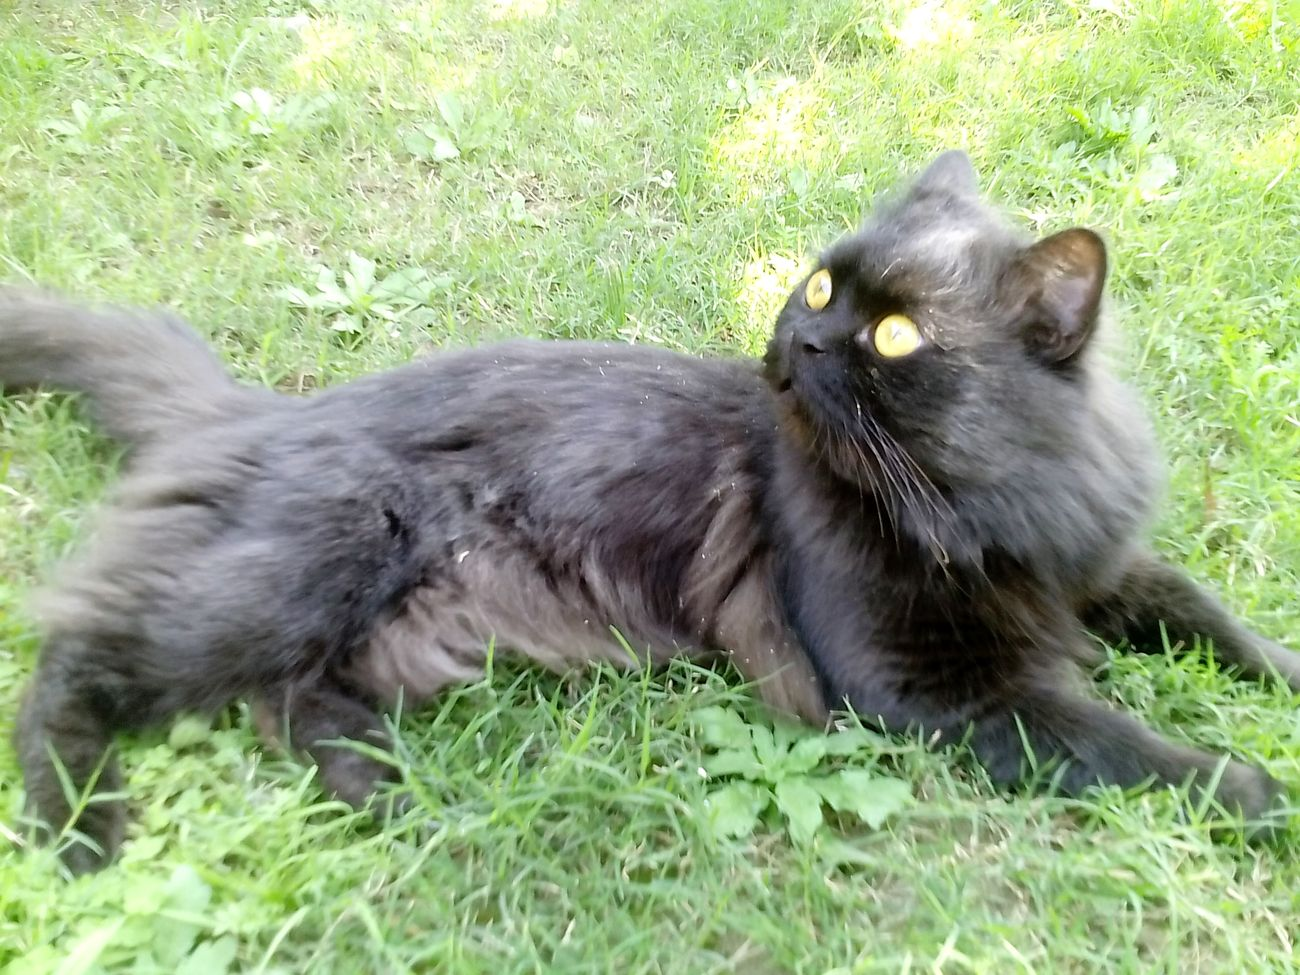 Nature Nature Photography Outdoor EyeEmNewHere Grass Animal Themes Pets Day Persian Cat  Animalphotography Pakistan Blackcatlove Cats Cutecat Tom Green Colour Black BLackCat Goldeneyes Catphotography Eyes Are Soul Reflection Catlover Adorable Cats Of EyeEm Animal Love EyeEmNewHere